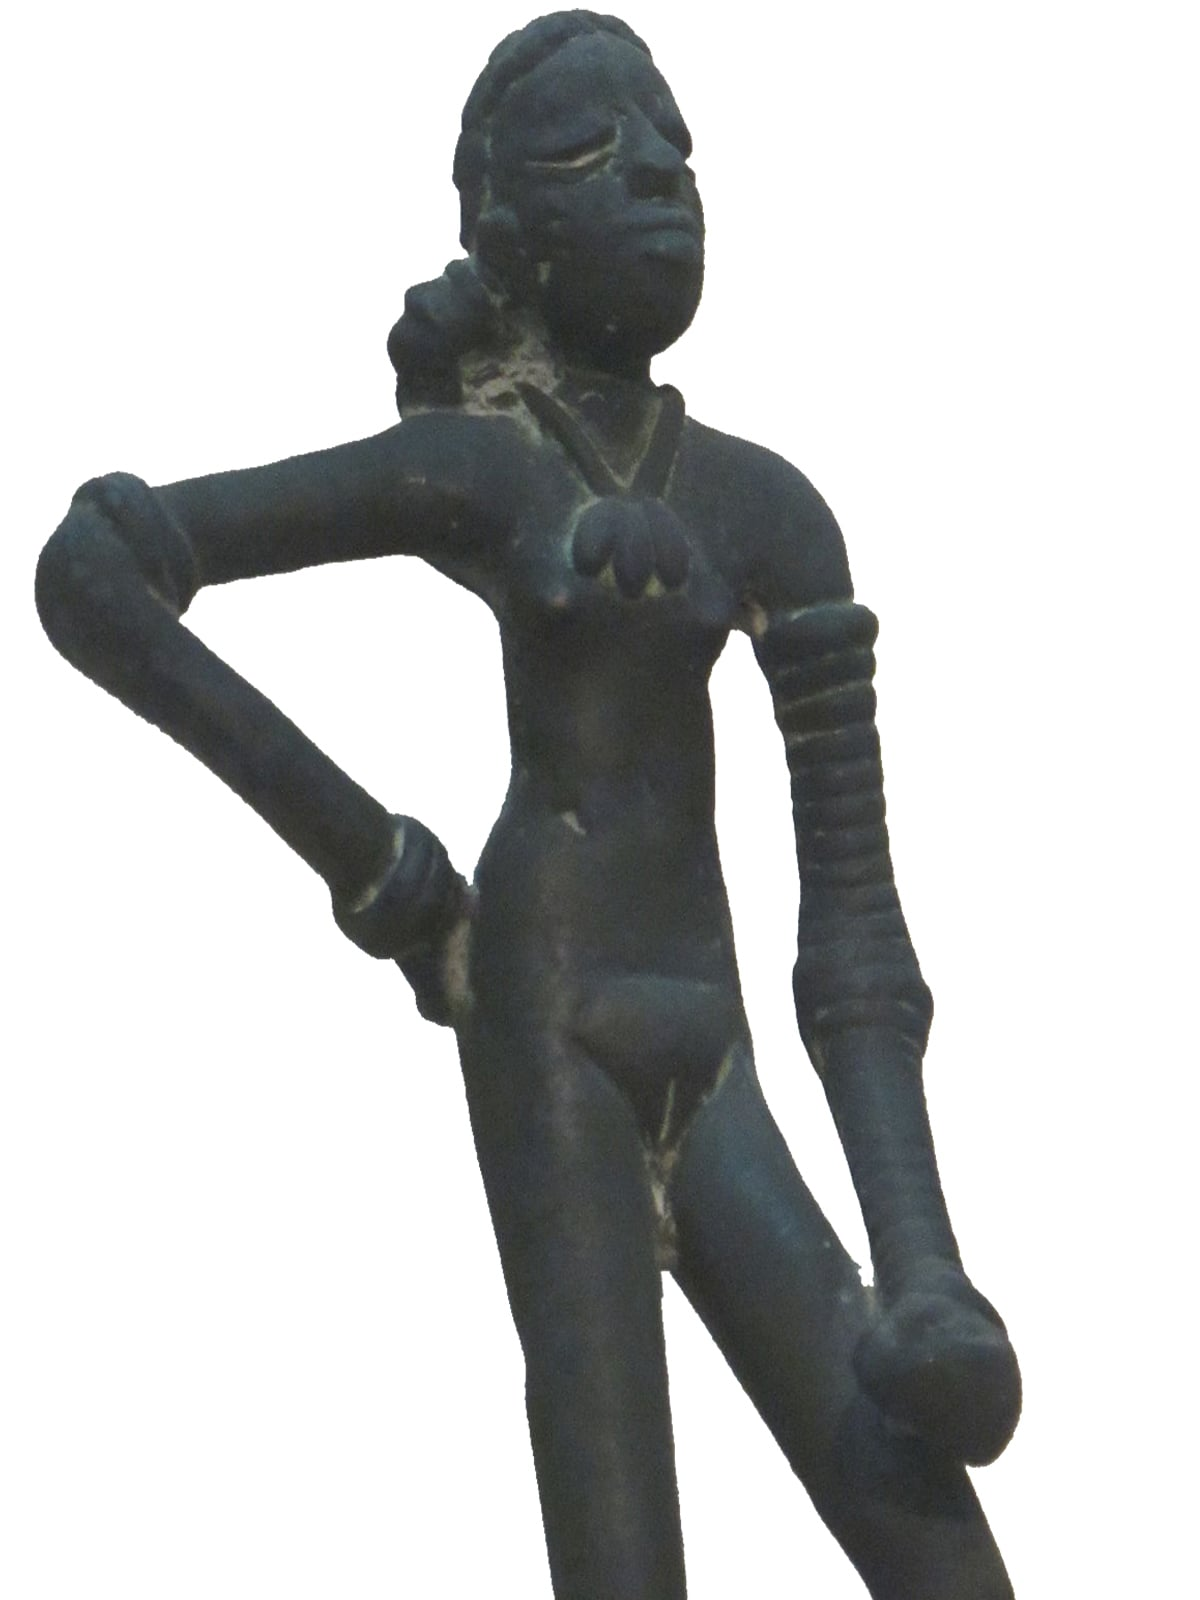 The famous 'Dancing Girl' statue from the ancient city of Mohenjodaro